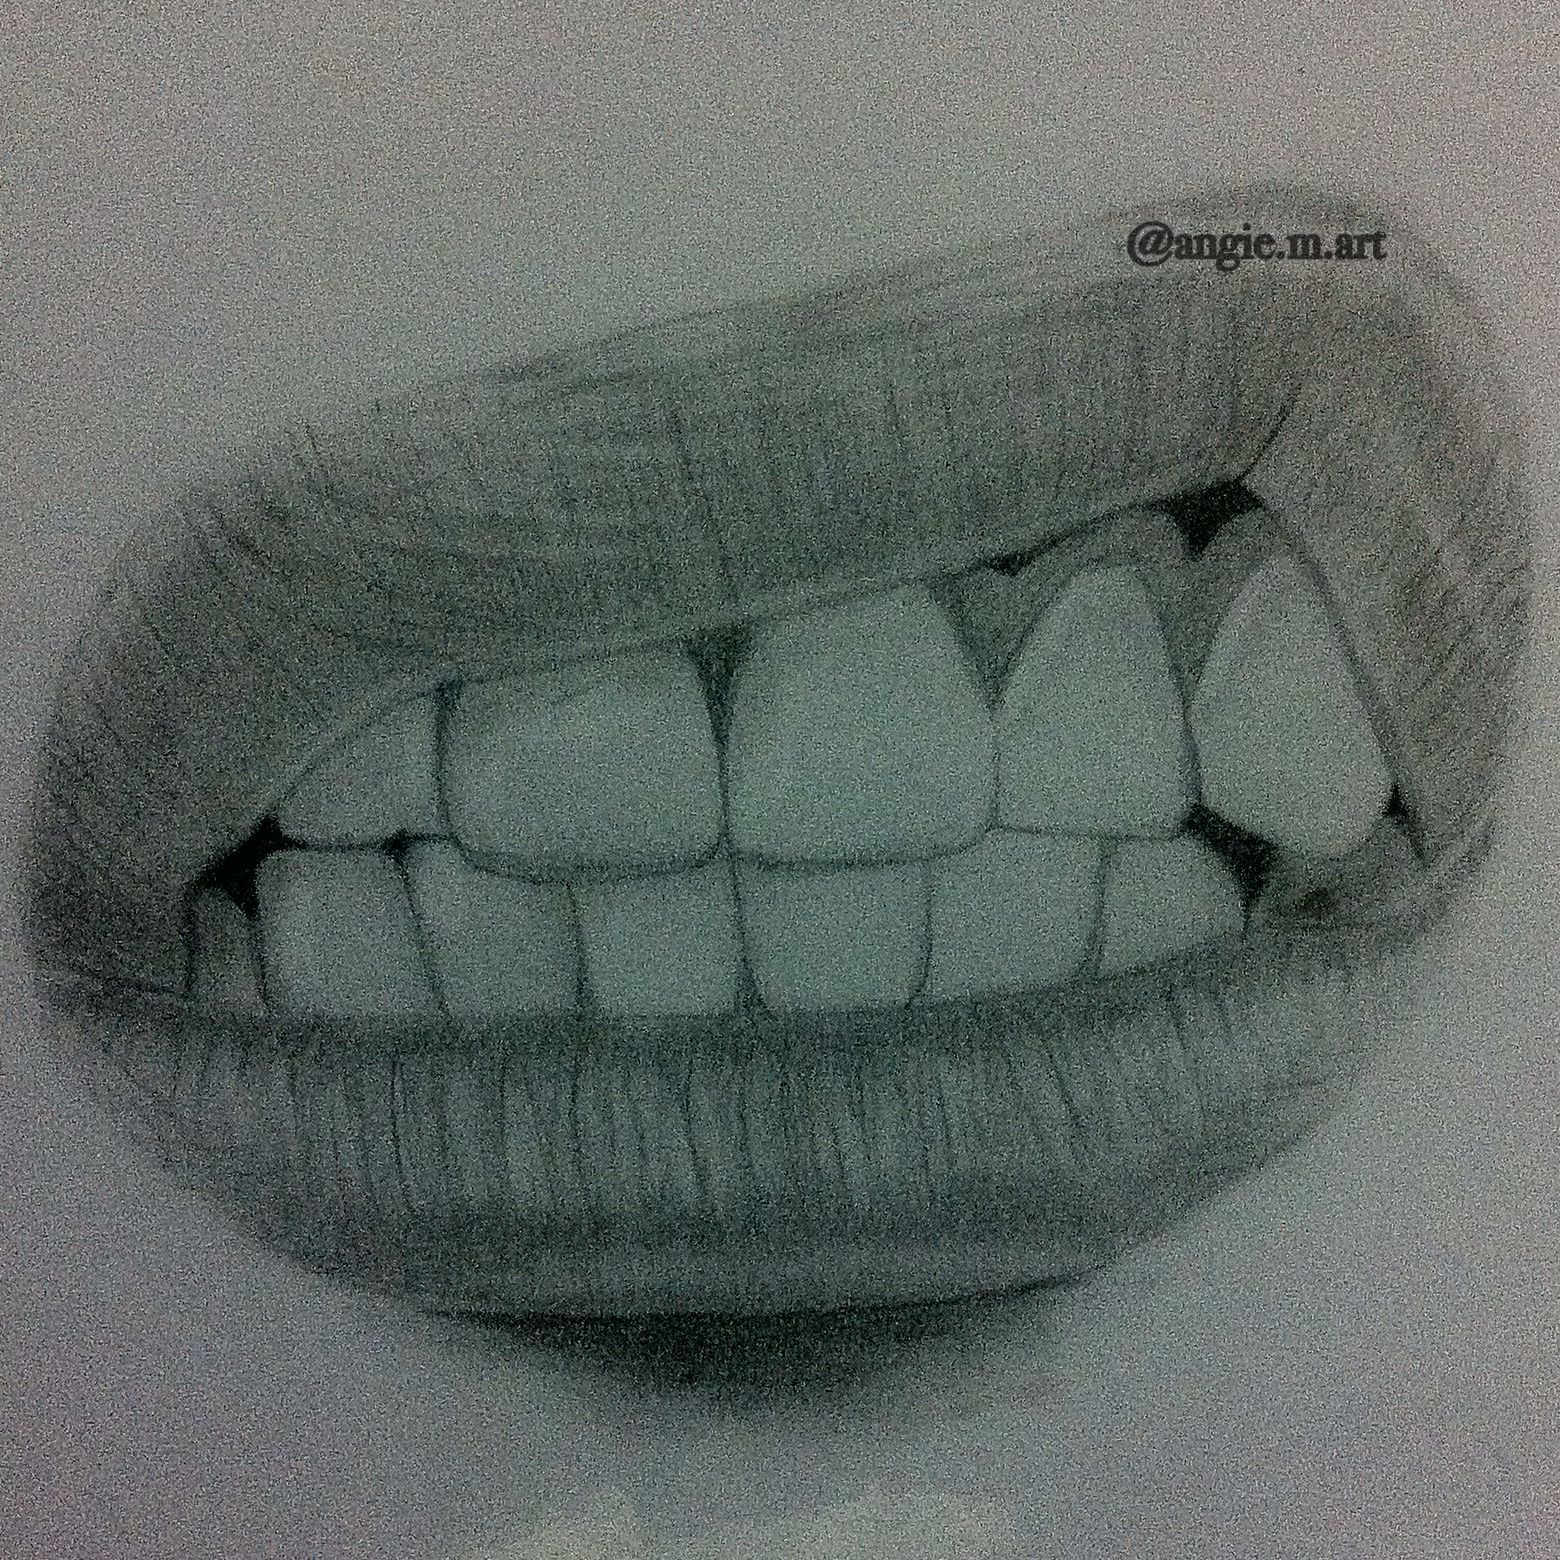 This is an image of Terrible Angry Mouth Drawing